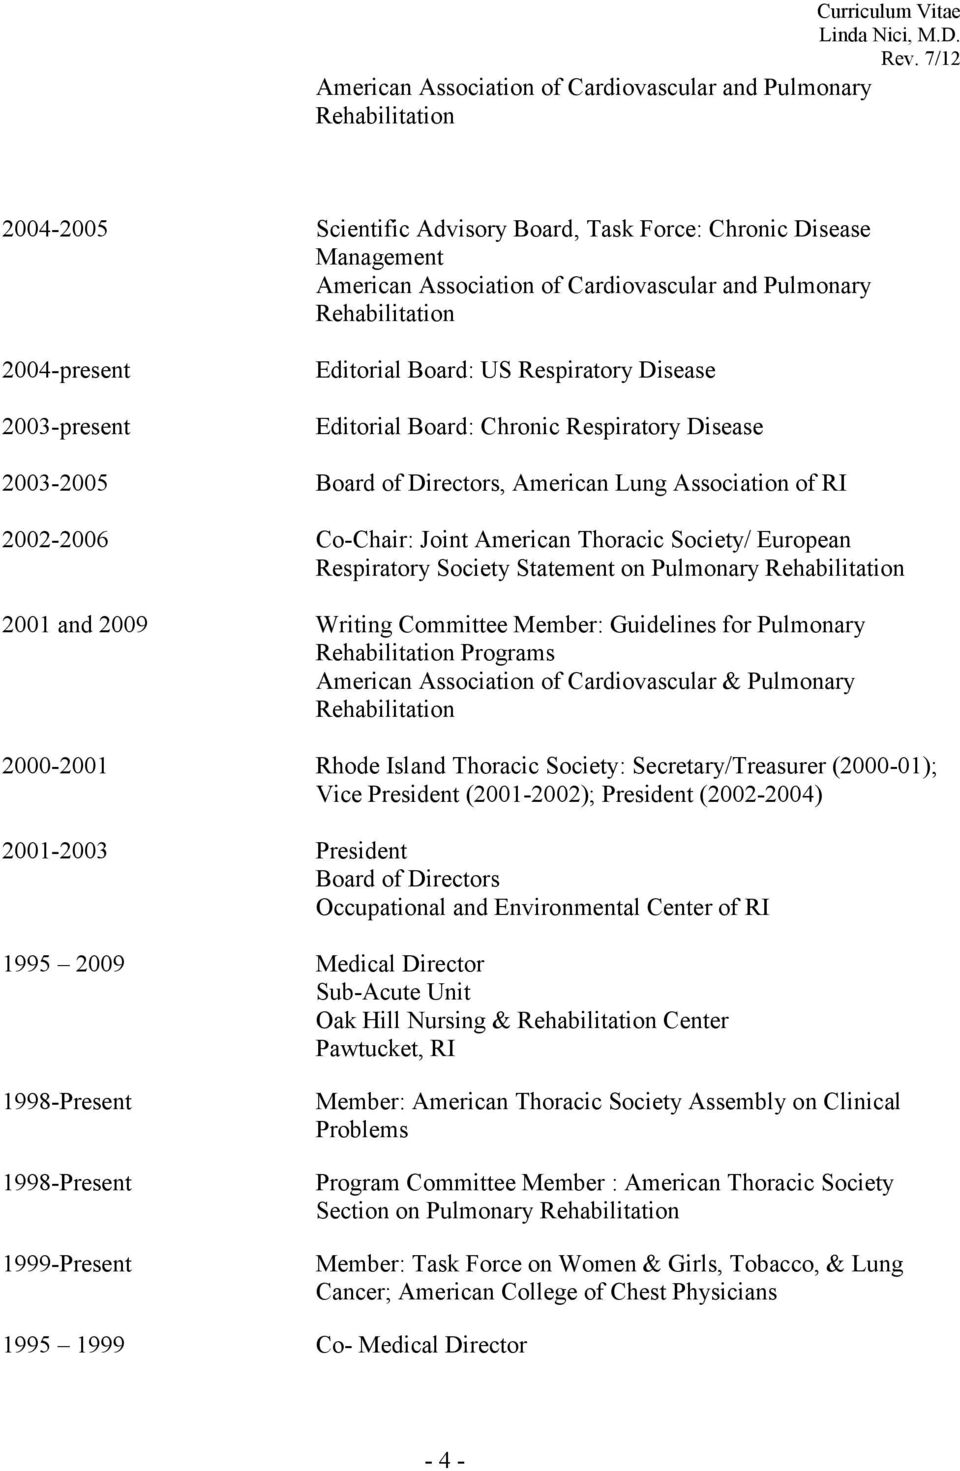 RI 2002-2006 Co-Chair: Joint American Thoracic Society/ European Respiratory Society Statement on Pulmonary Rehabilitation 2001 and 2009 Writing Committee Member: Guidelines for Pulmonary